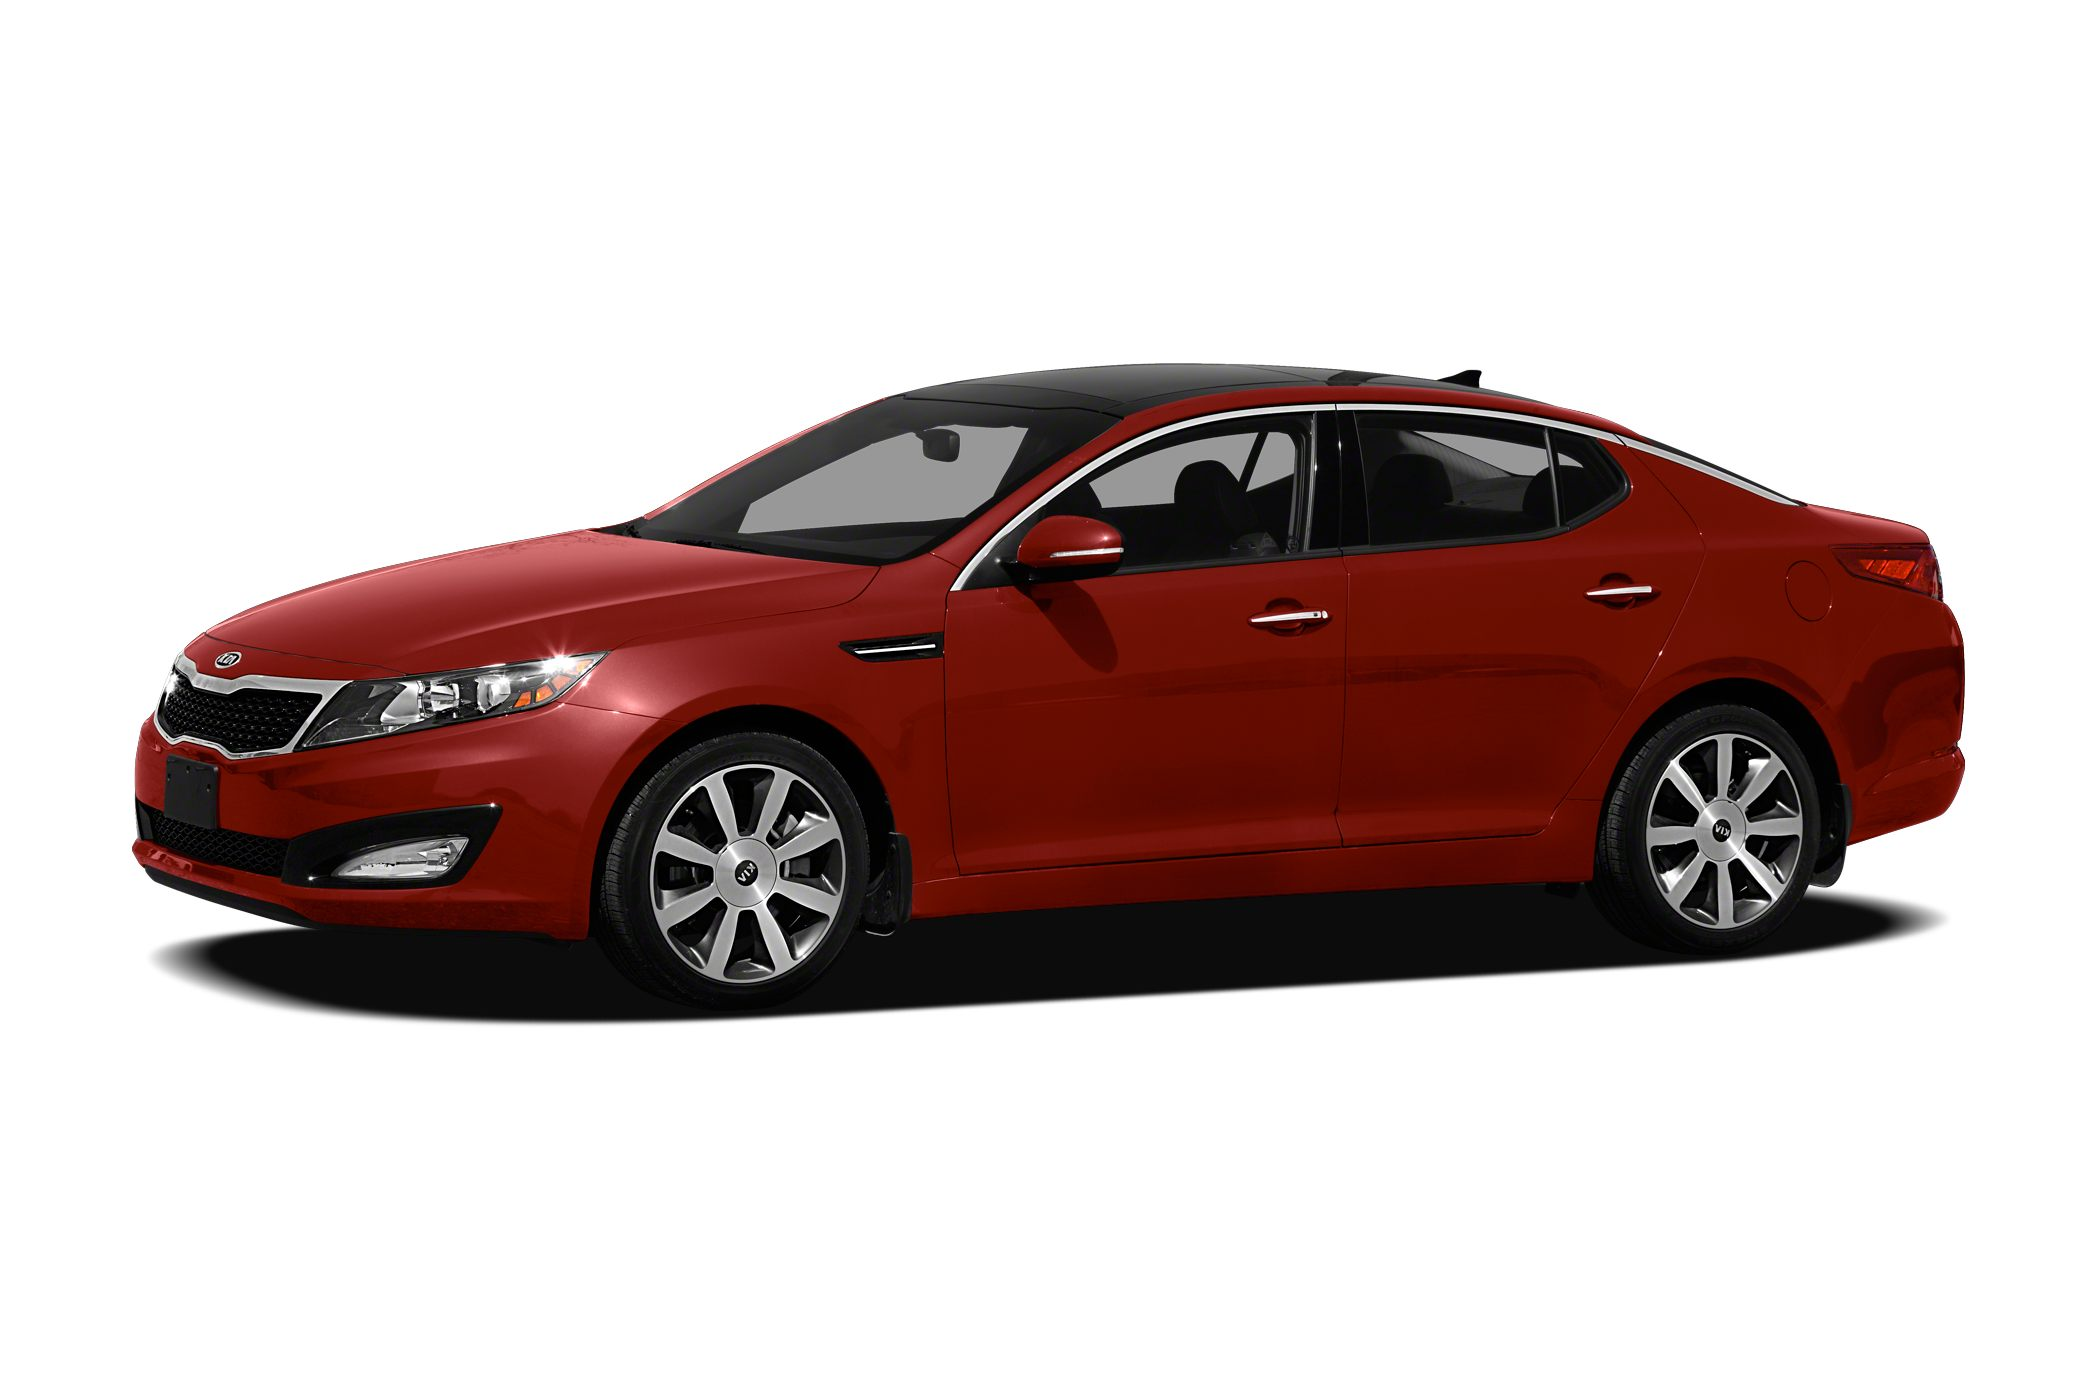 2011 Kia Optima  Turbo Premium Package 4-Way Power Front Passenger Seat Driver Seat Memory Heat